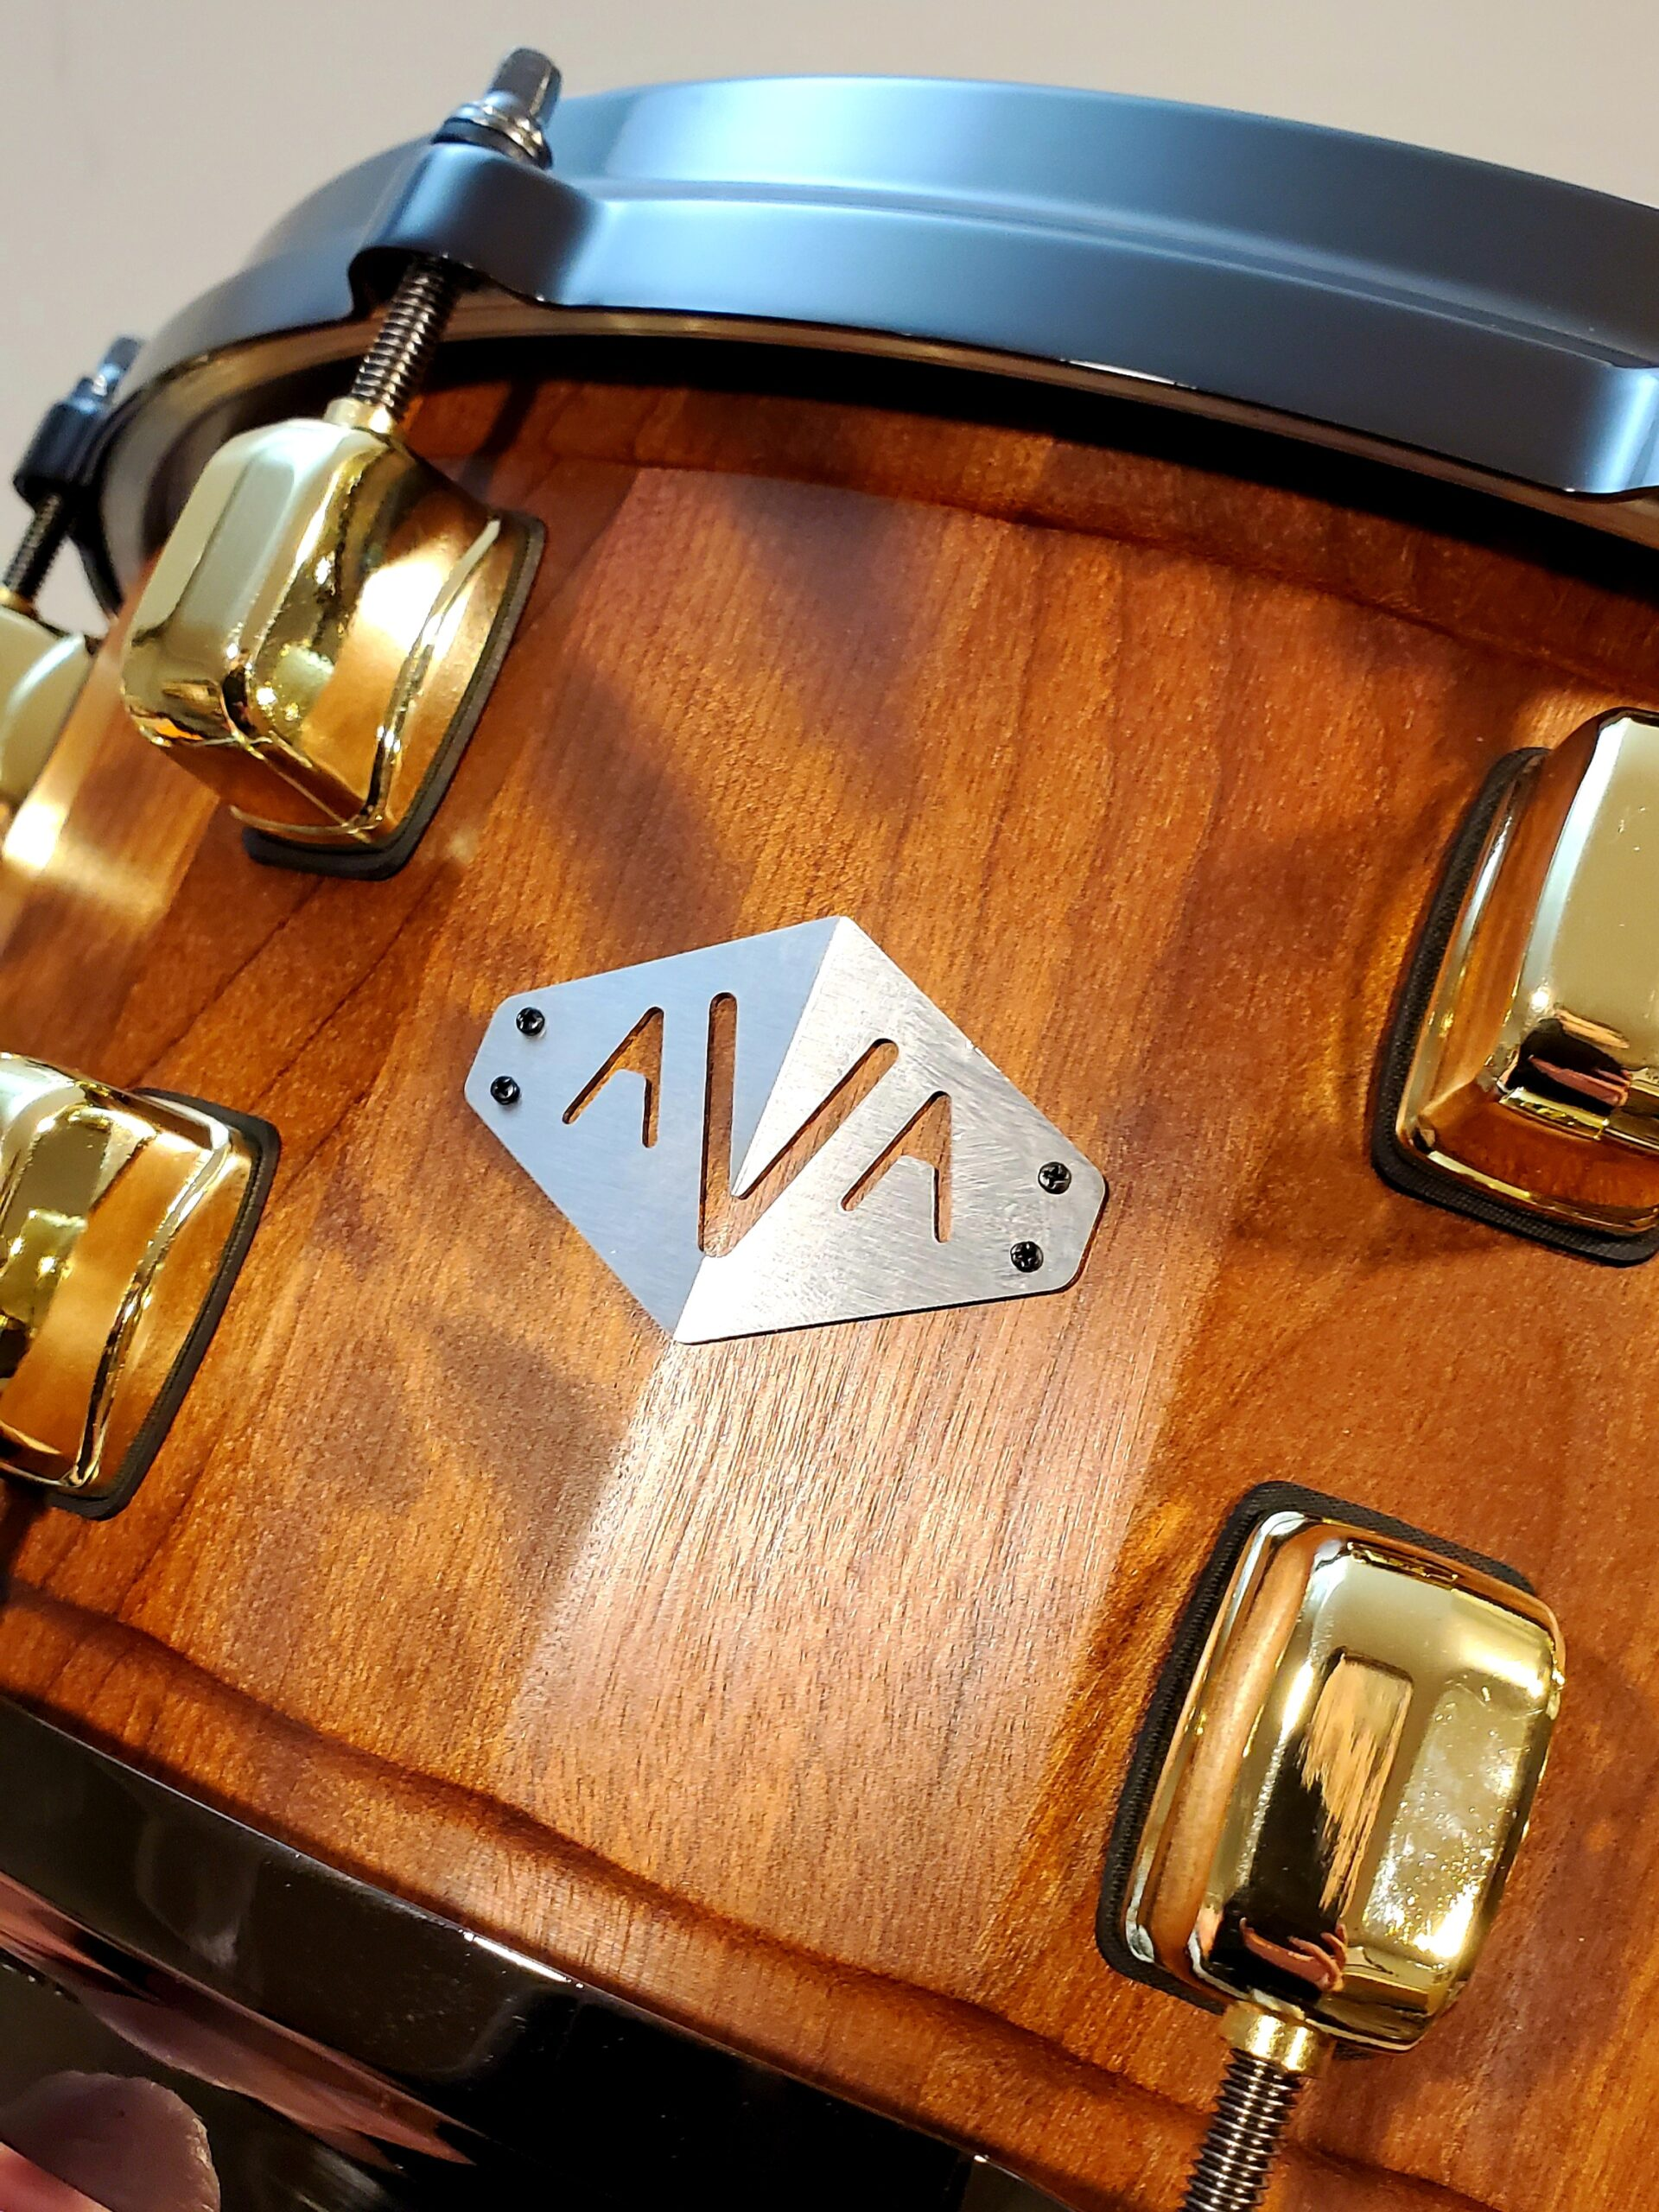 14 X 6.5 THERMALLY MODIFIED BIRCH